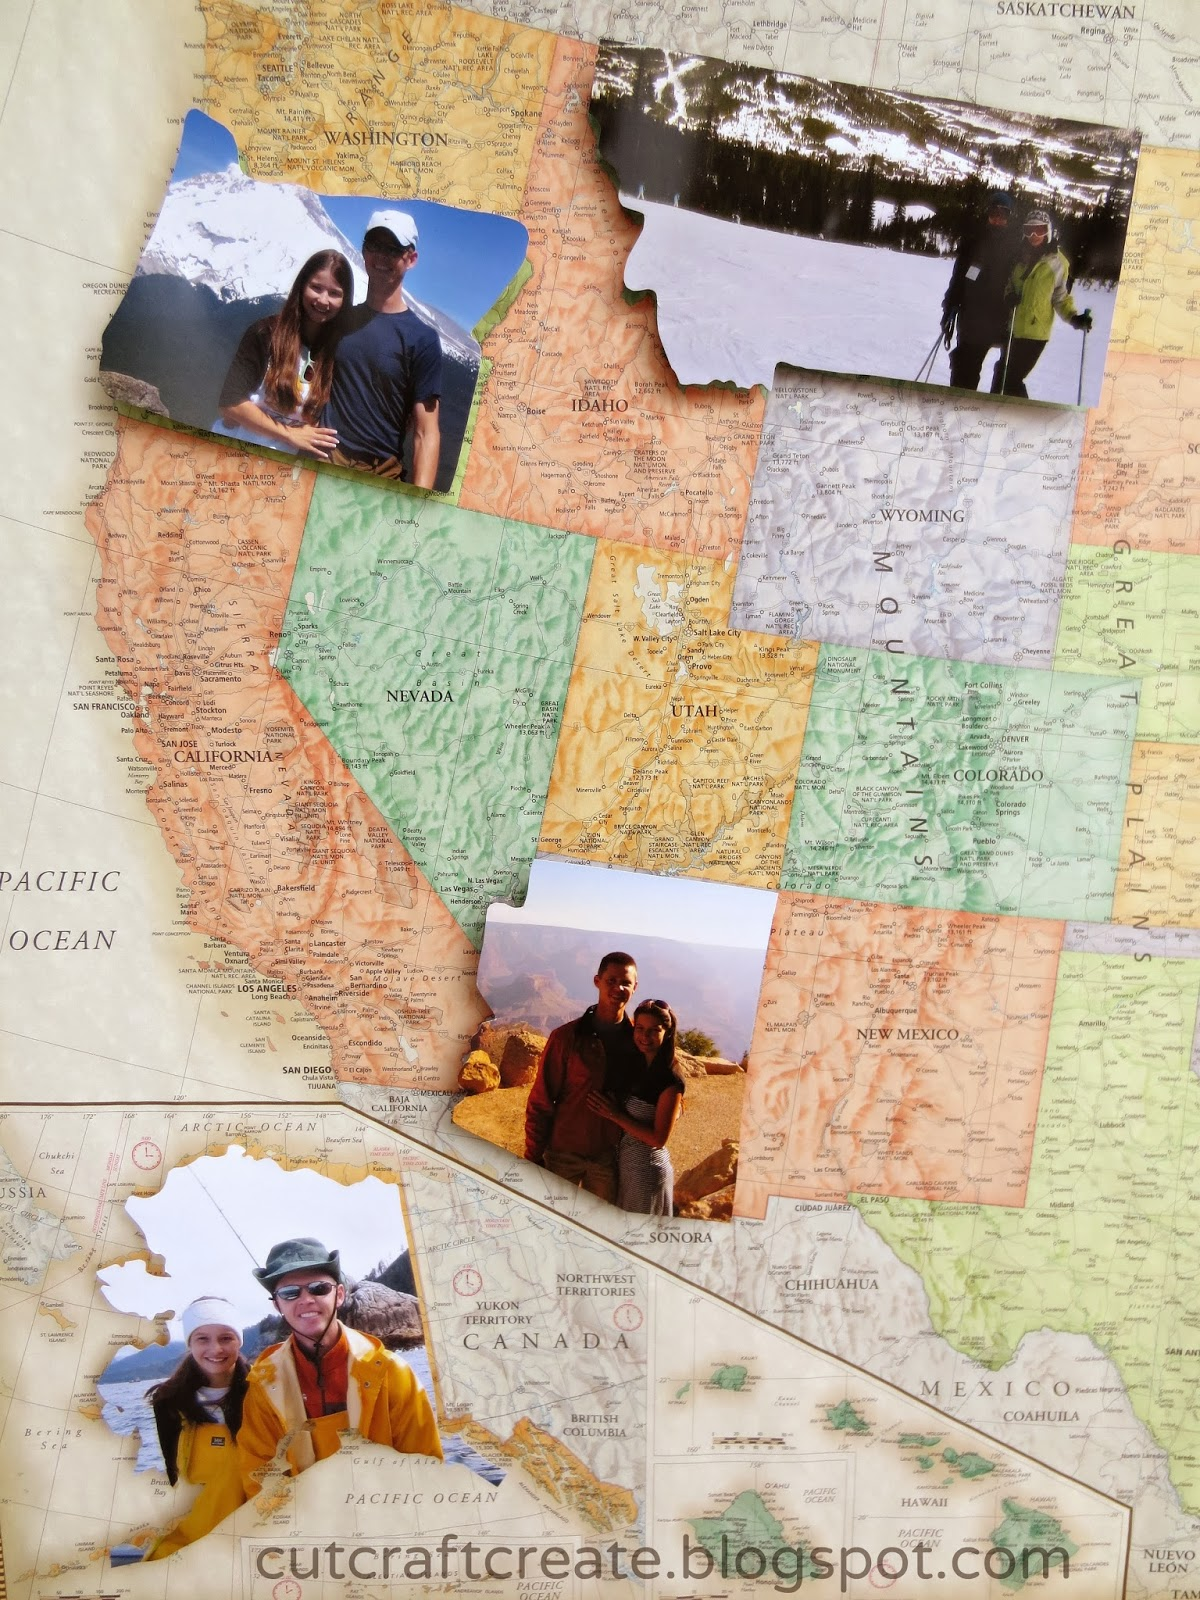 Cut Craft Create Personalized Photo Map For Our Paper Anniversary - Us states traveled map